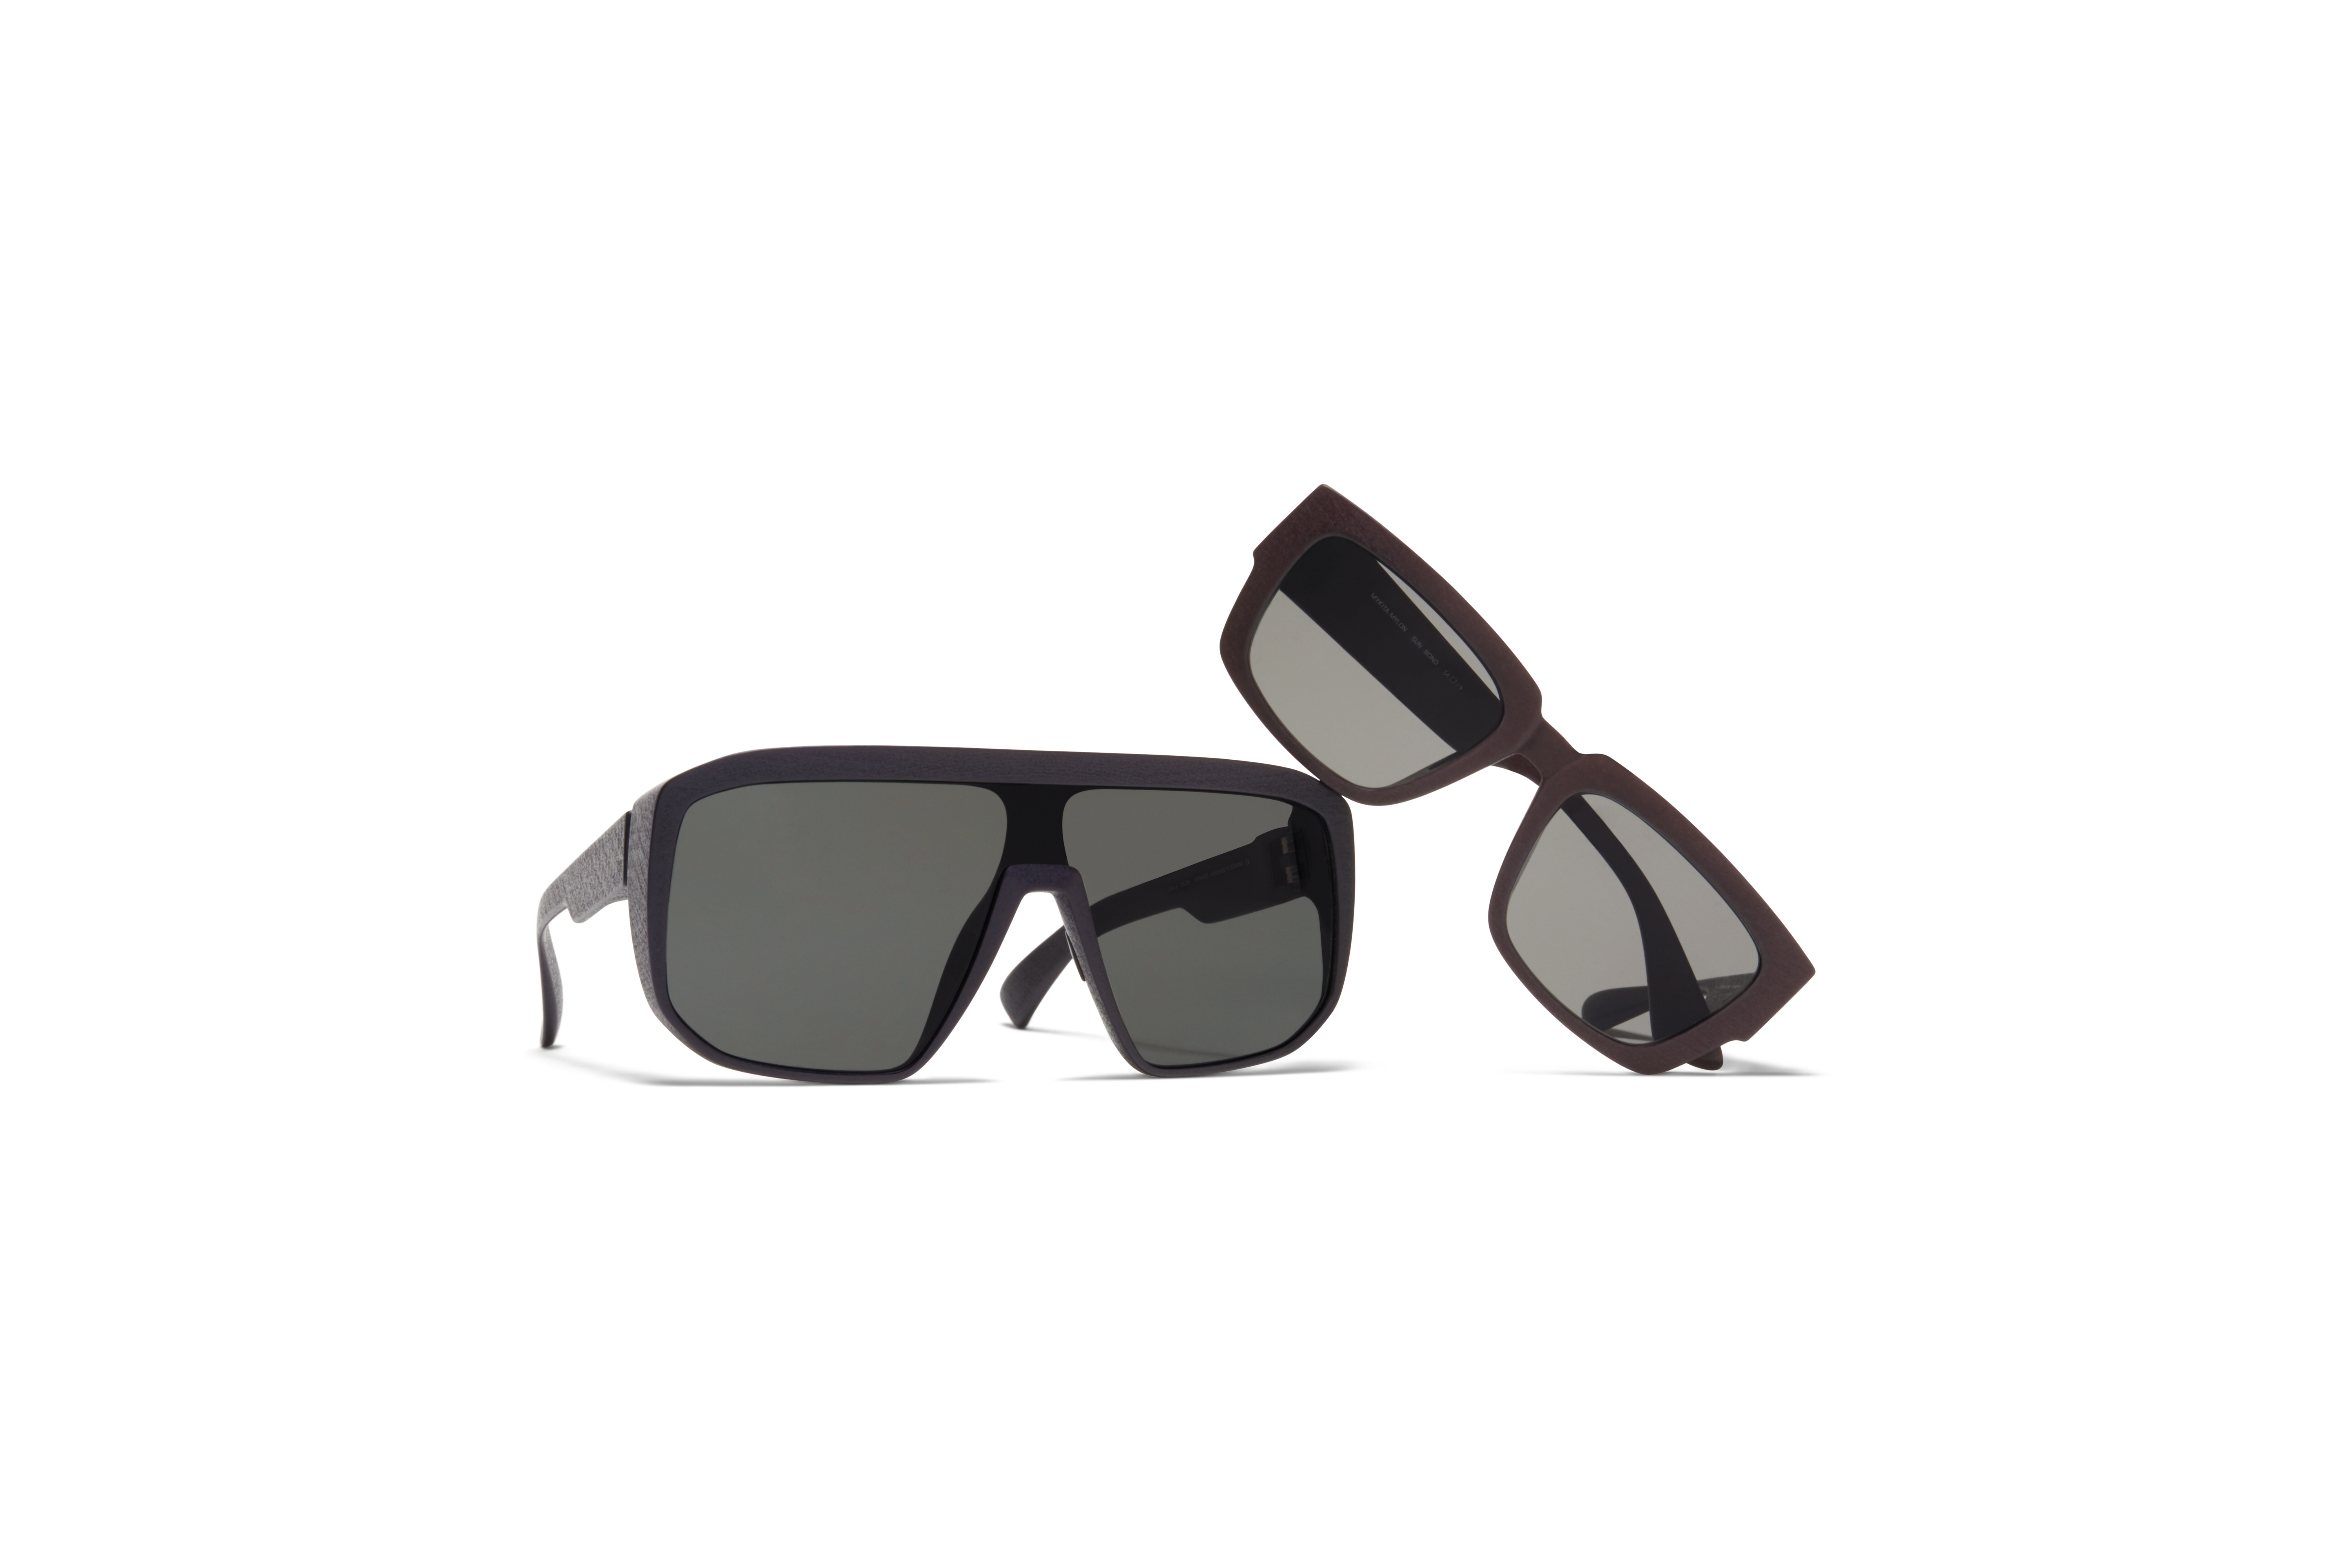 Mylon Sun MYKITA Mylon Sun Shift Md1 Pitch Black Dark Grey Solid Shield MYKITA Mylon Sun Bond Md22 Ebony Brown Grey